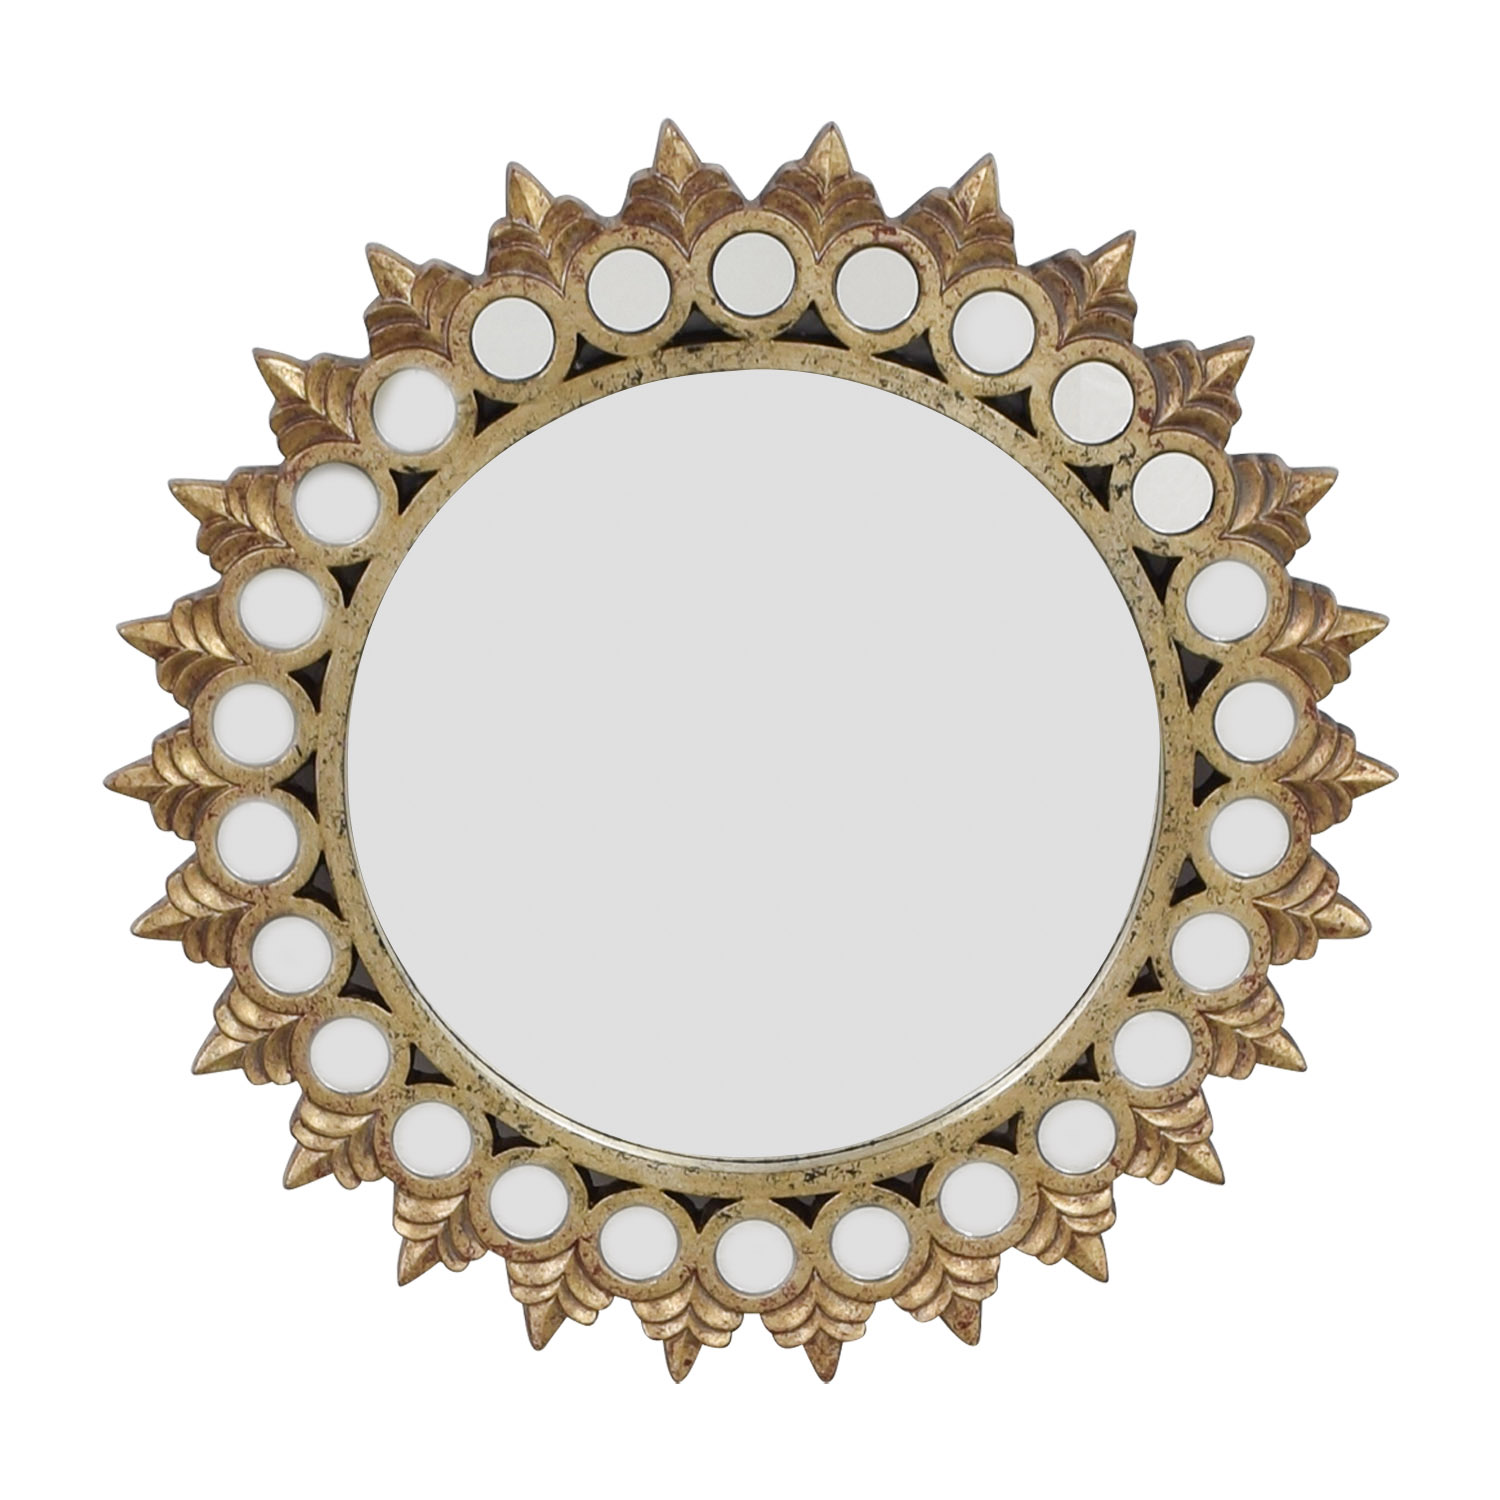 Raymour & Flanigan Raymour & Flanigan Distressed Gold Mirrored Frame Round Mirror gold/glass